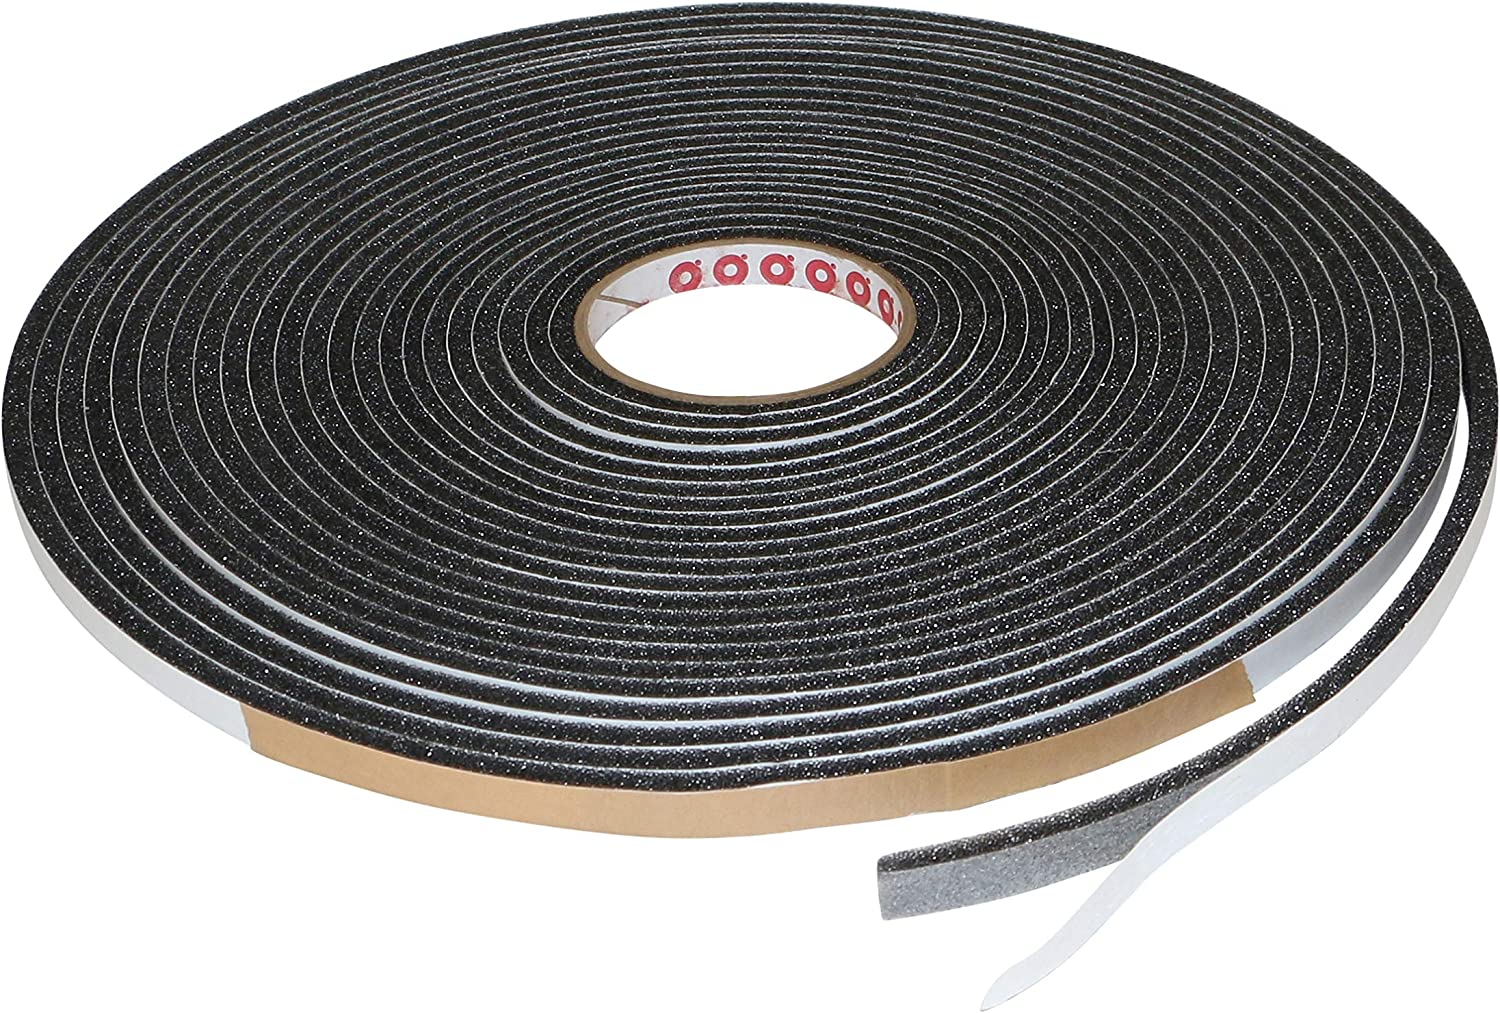 Pres-On P8500 Series Gasketing Foam Cheap mail order shopping Tape Cel Open Single-Sided Be super welcome